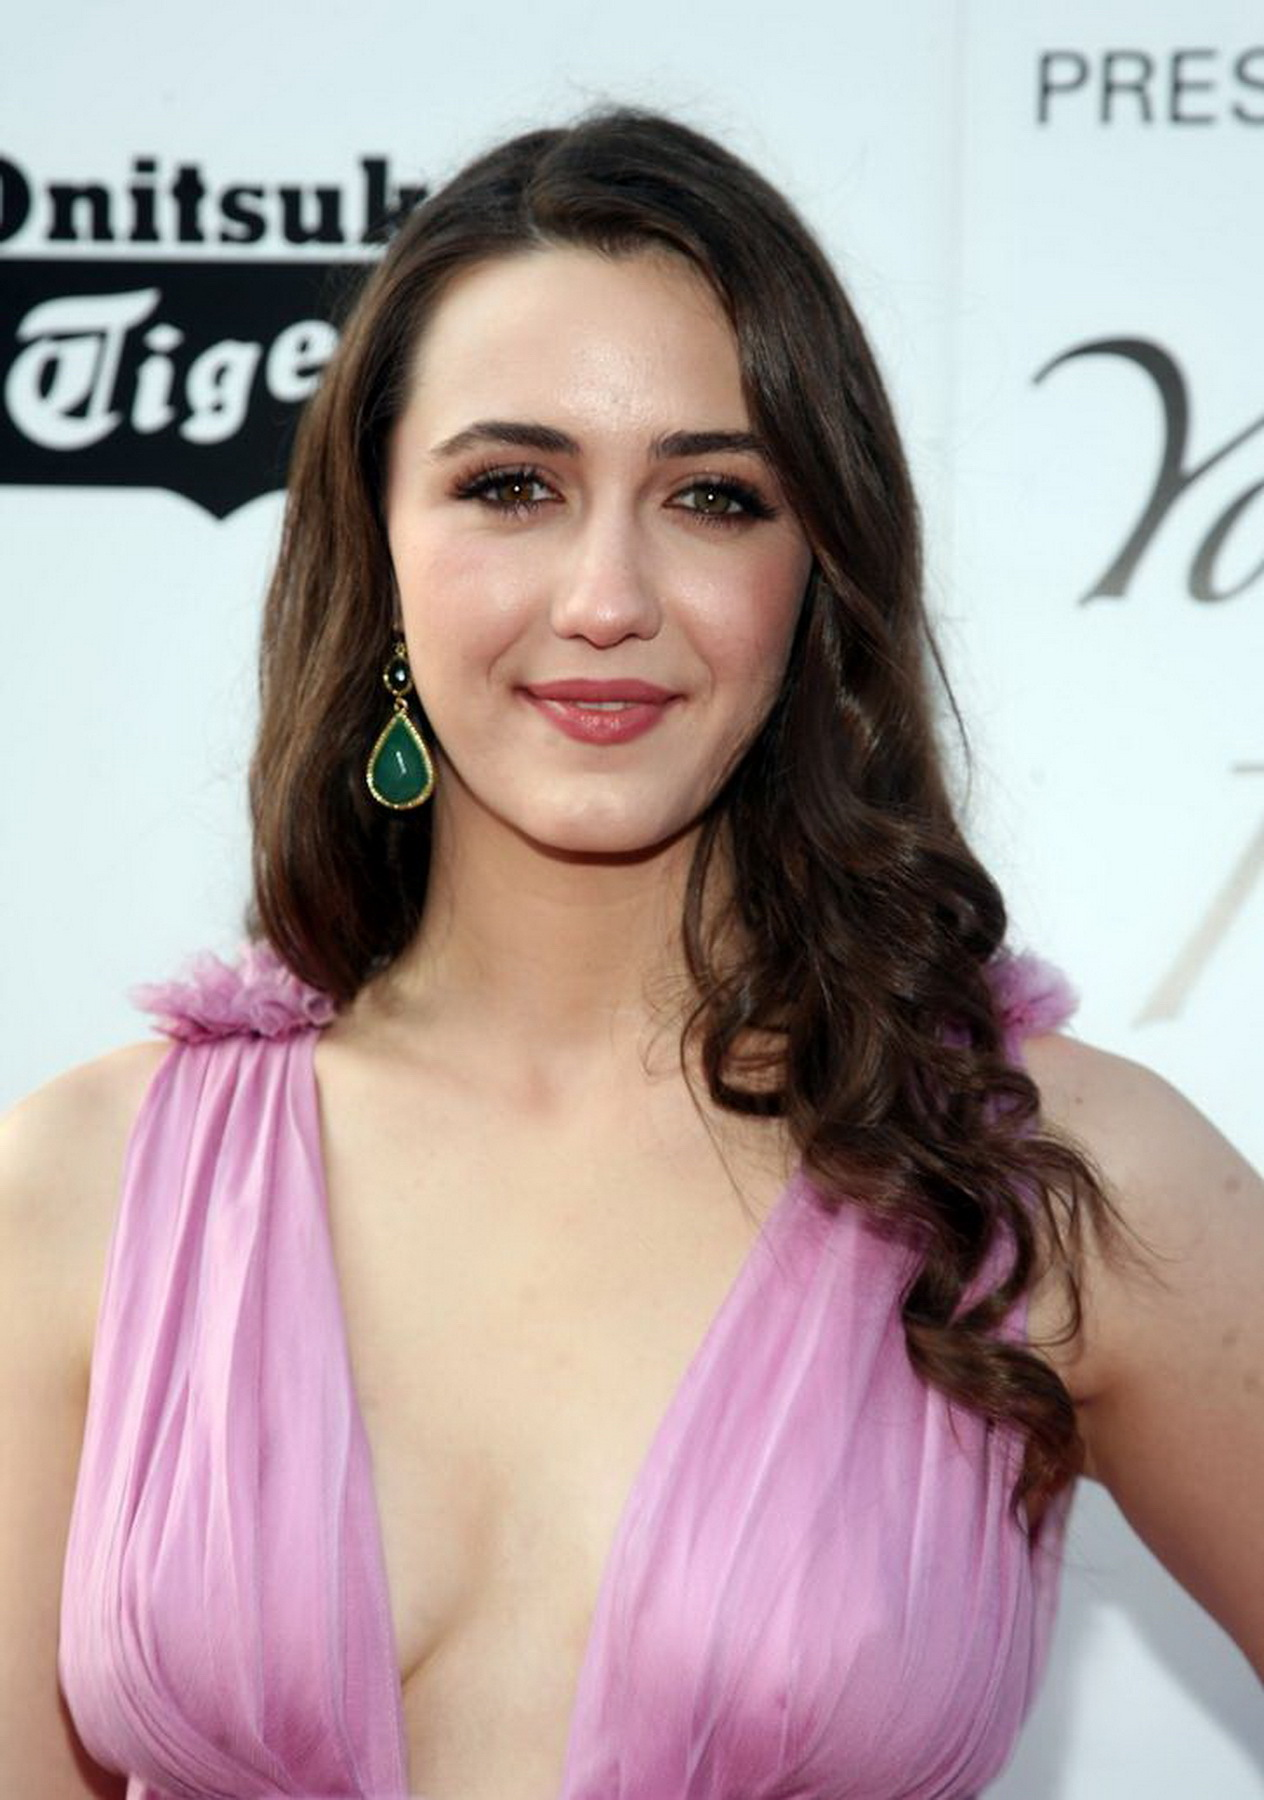 ICloud Madeline Zima naked (92 foto and video), Tits, Fappening, Selfie, butt 2019